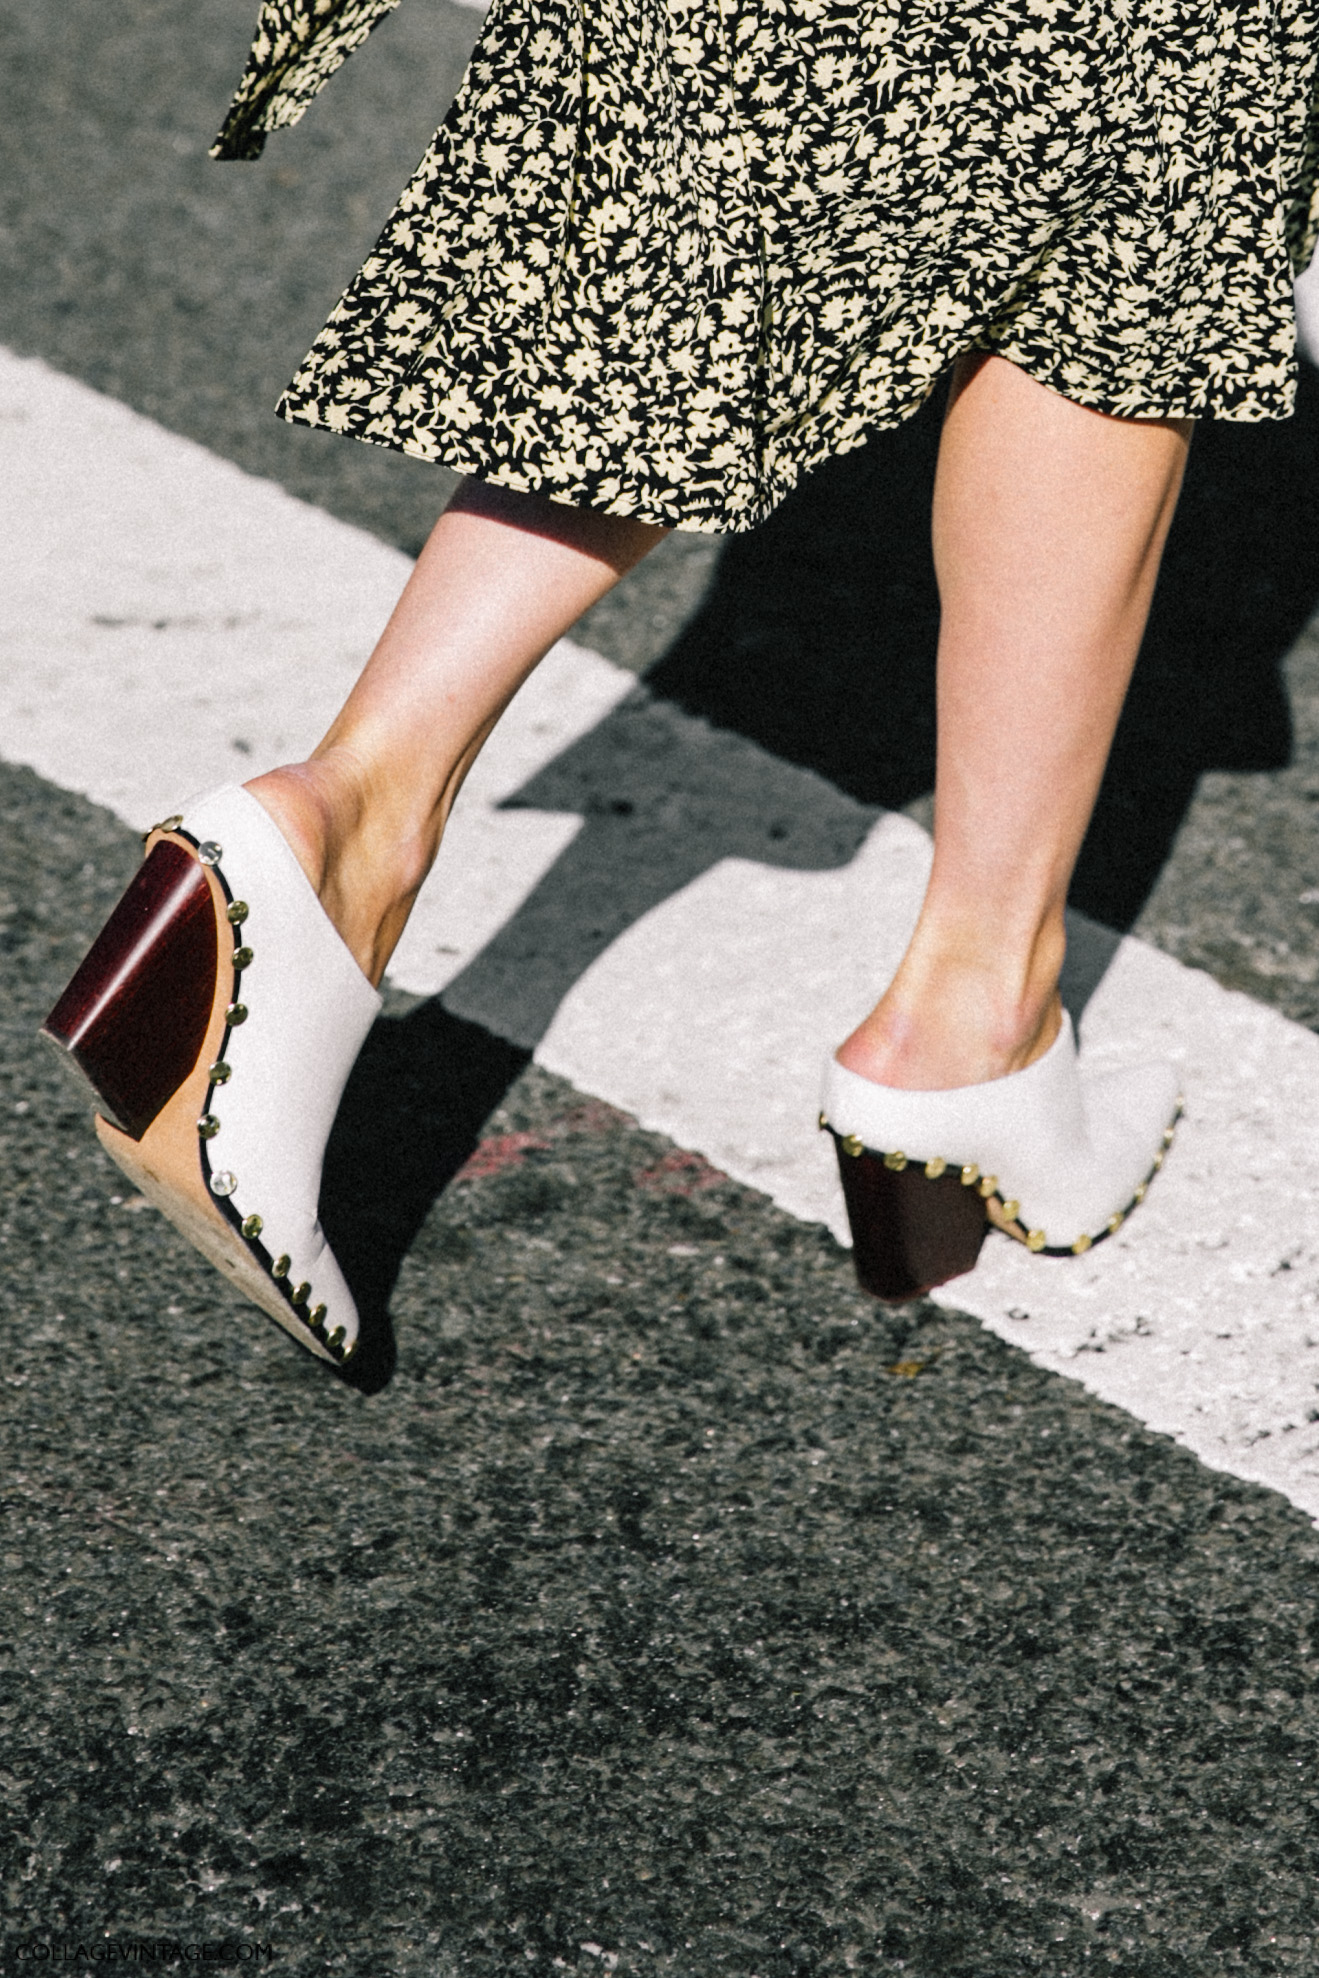 nyfw-new_york_fashion_week_ss17-street_style-outfits-collage_vintage-vintage-phillip_lim-the-row-proenza_schouler-rossie_aussolin-371